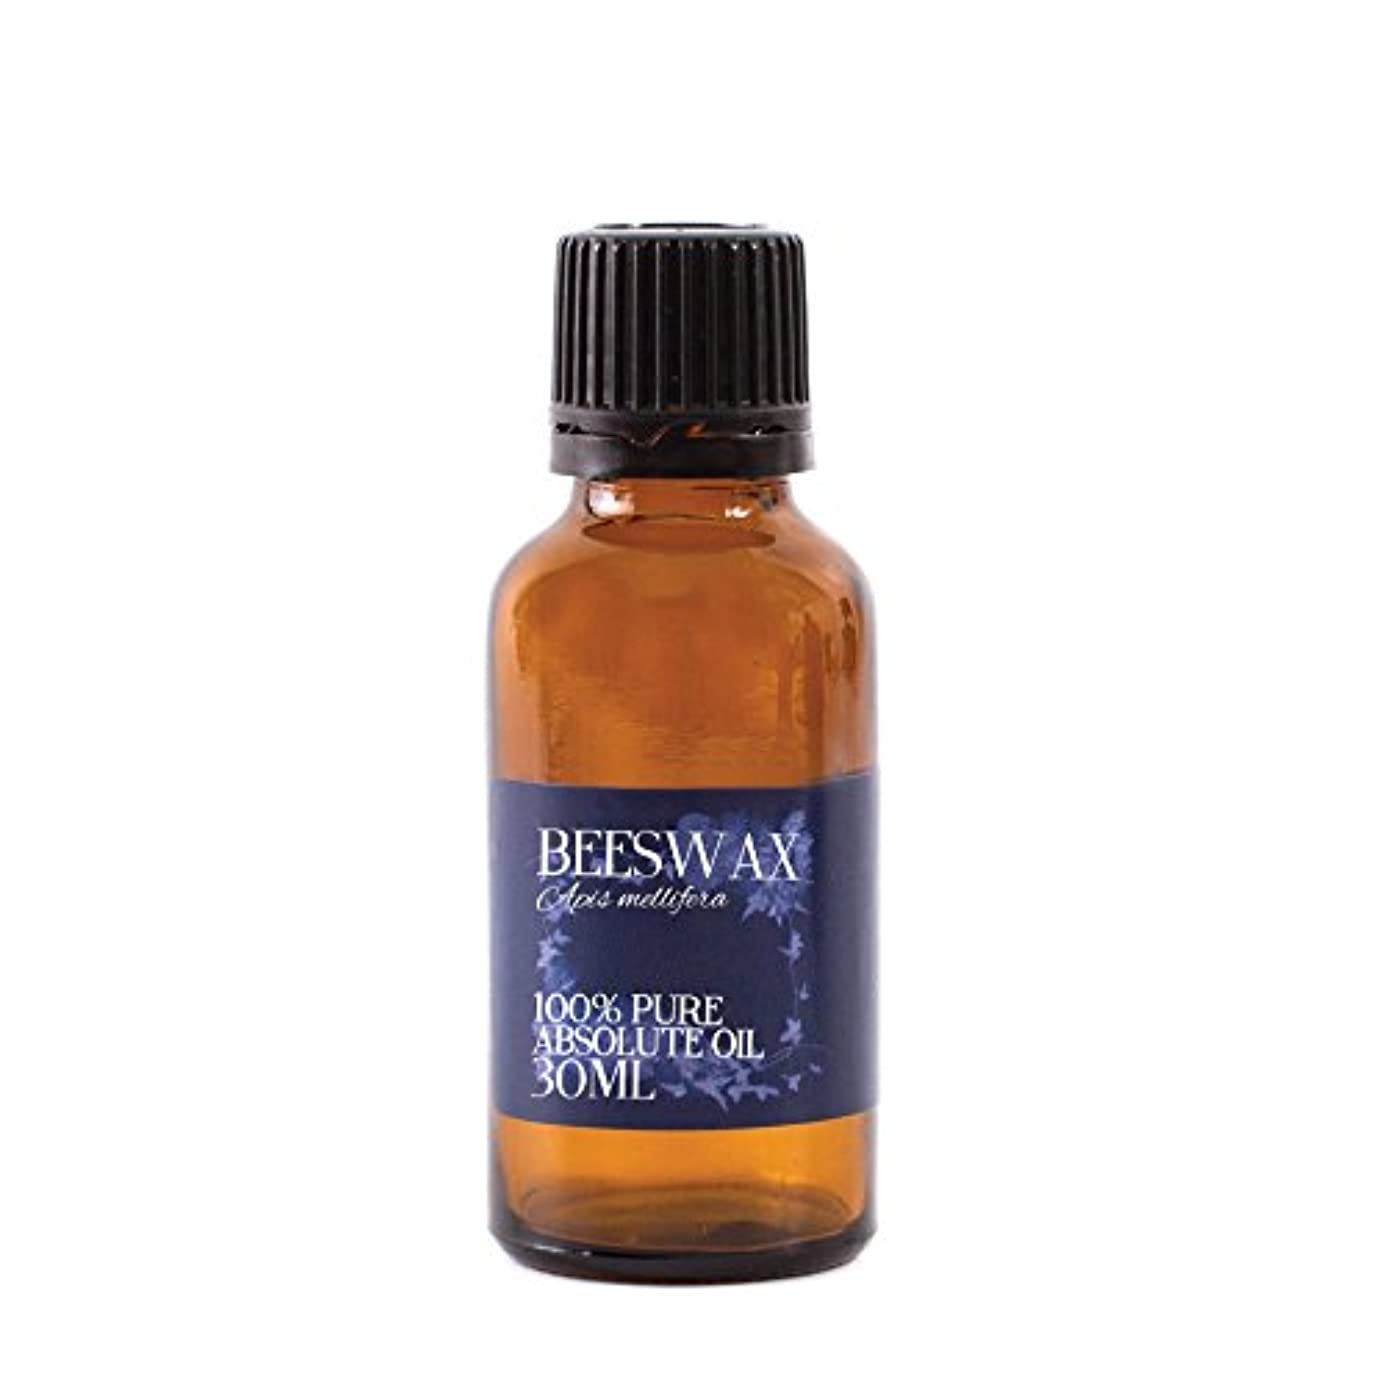 Beeswax Absolute Oil 30ml - 100% Pure